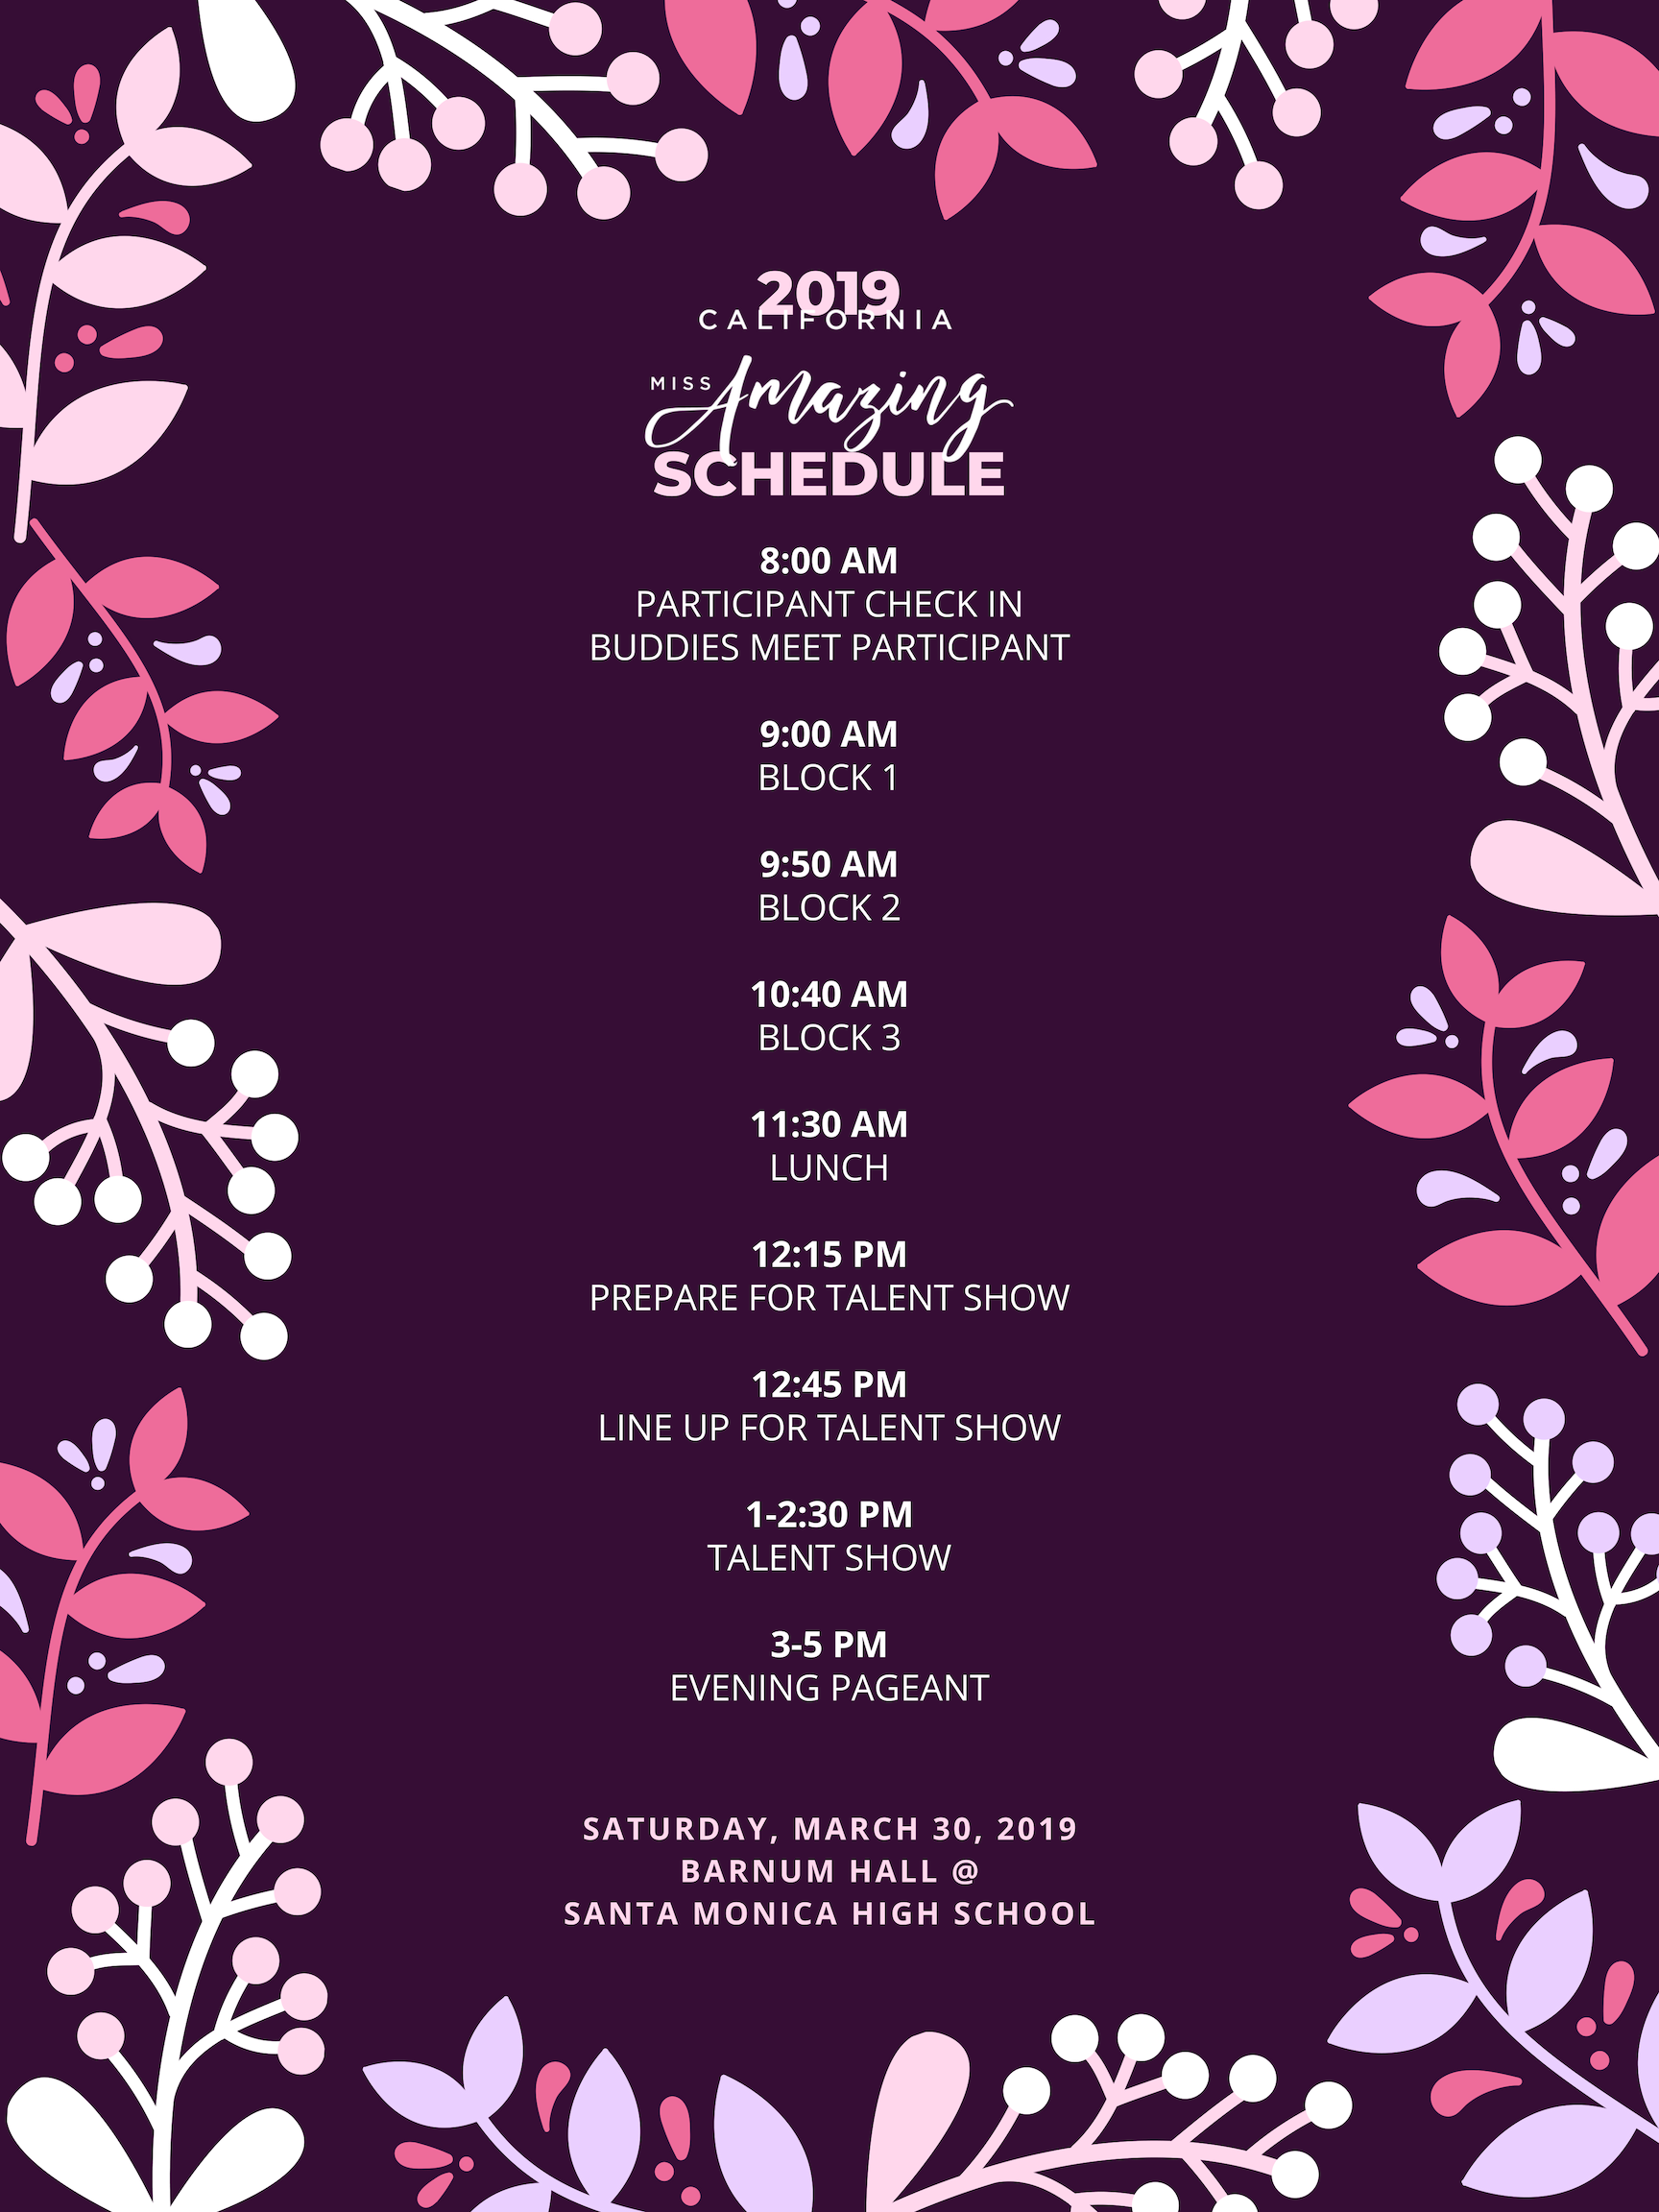 http://ca.missamazing.org/2019-event/